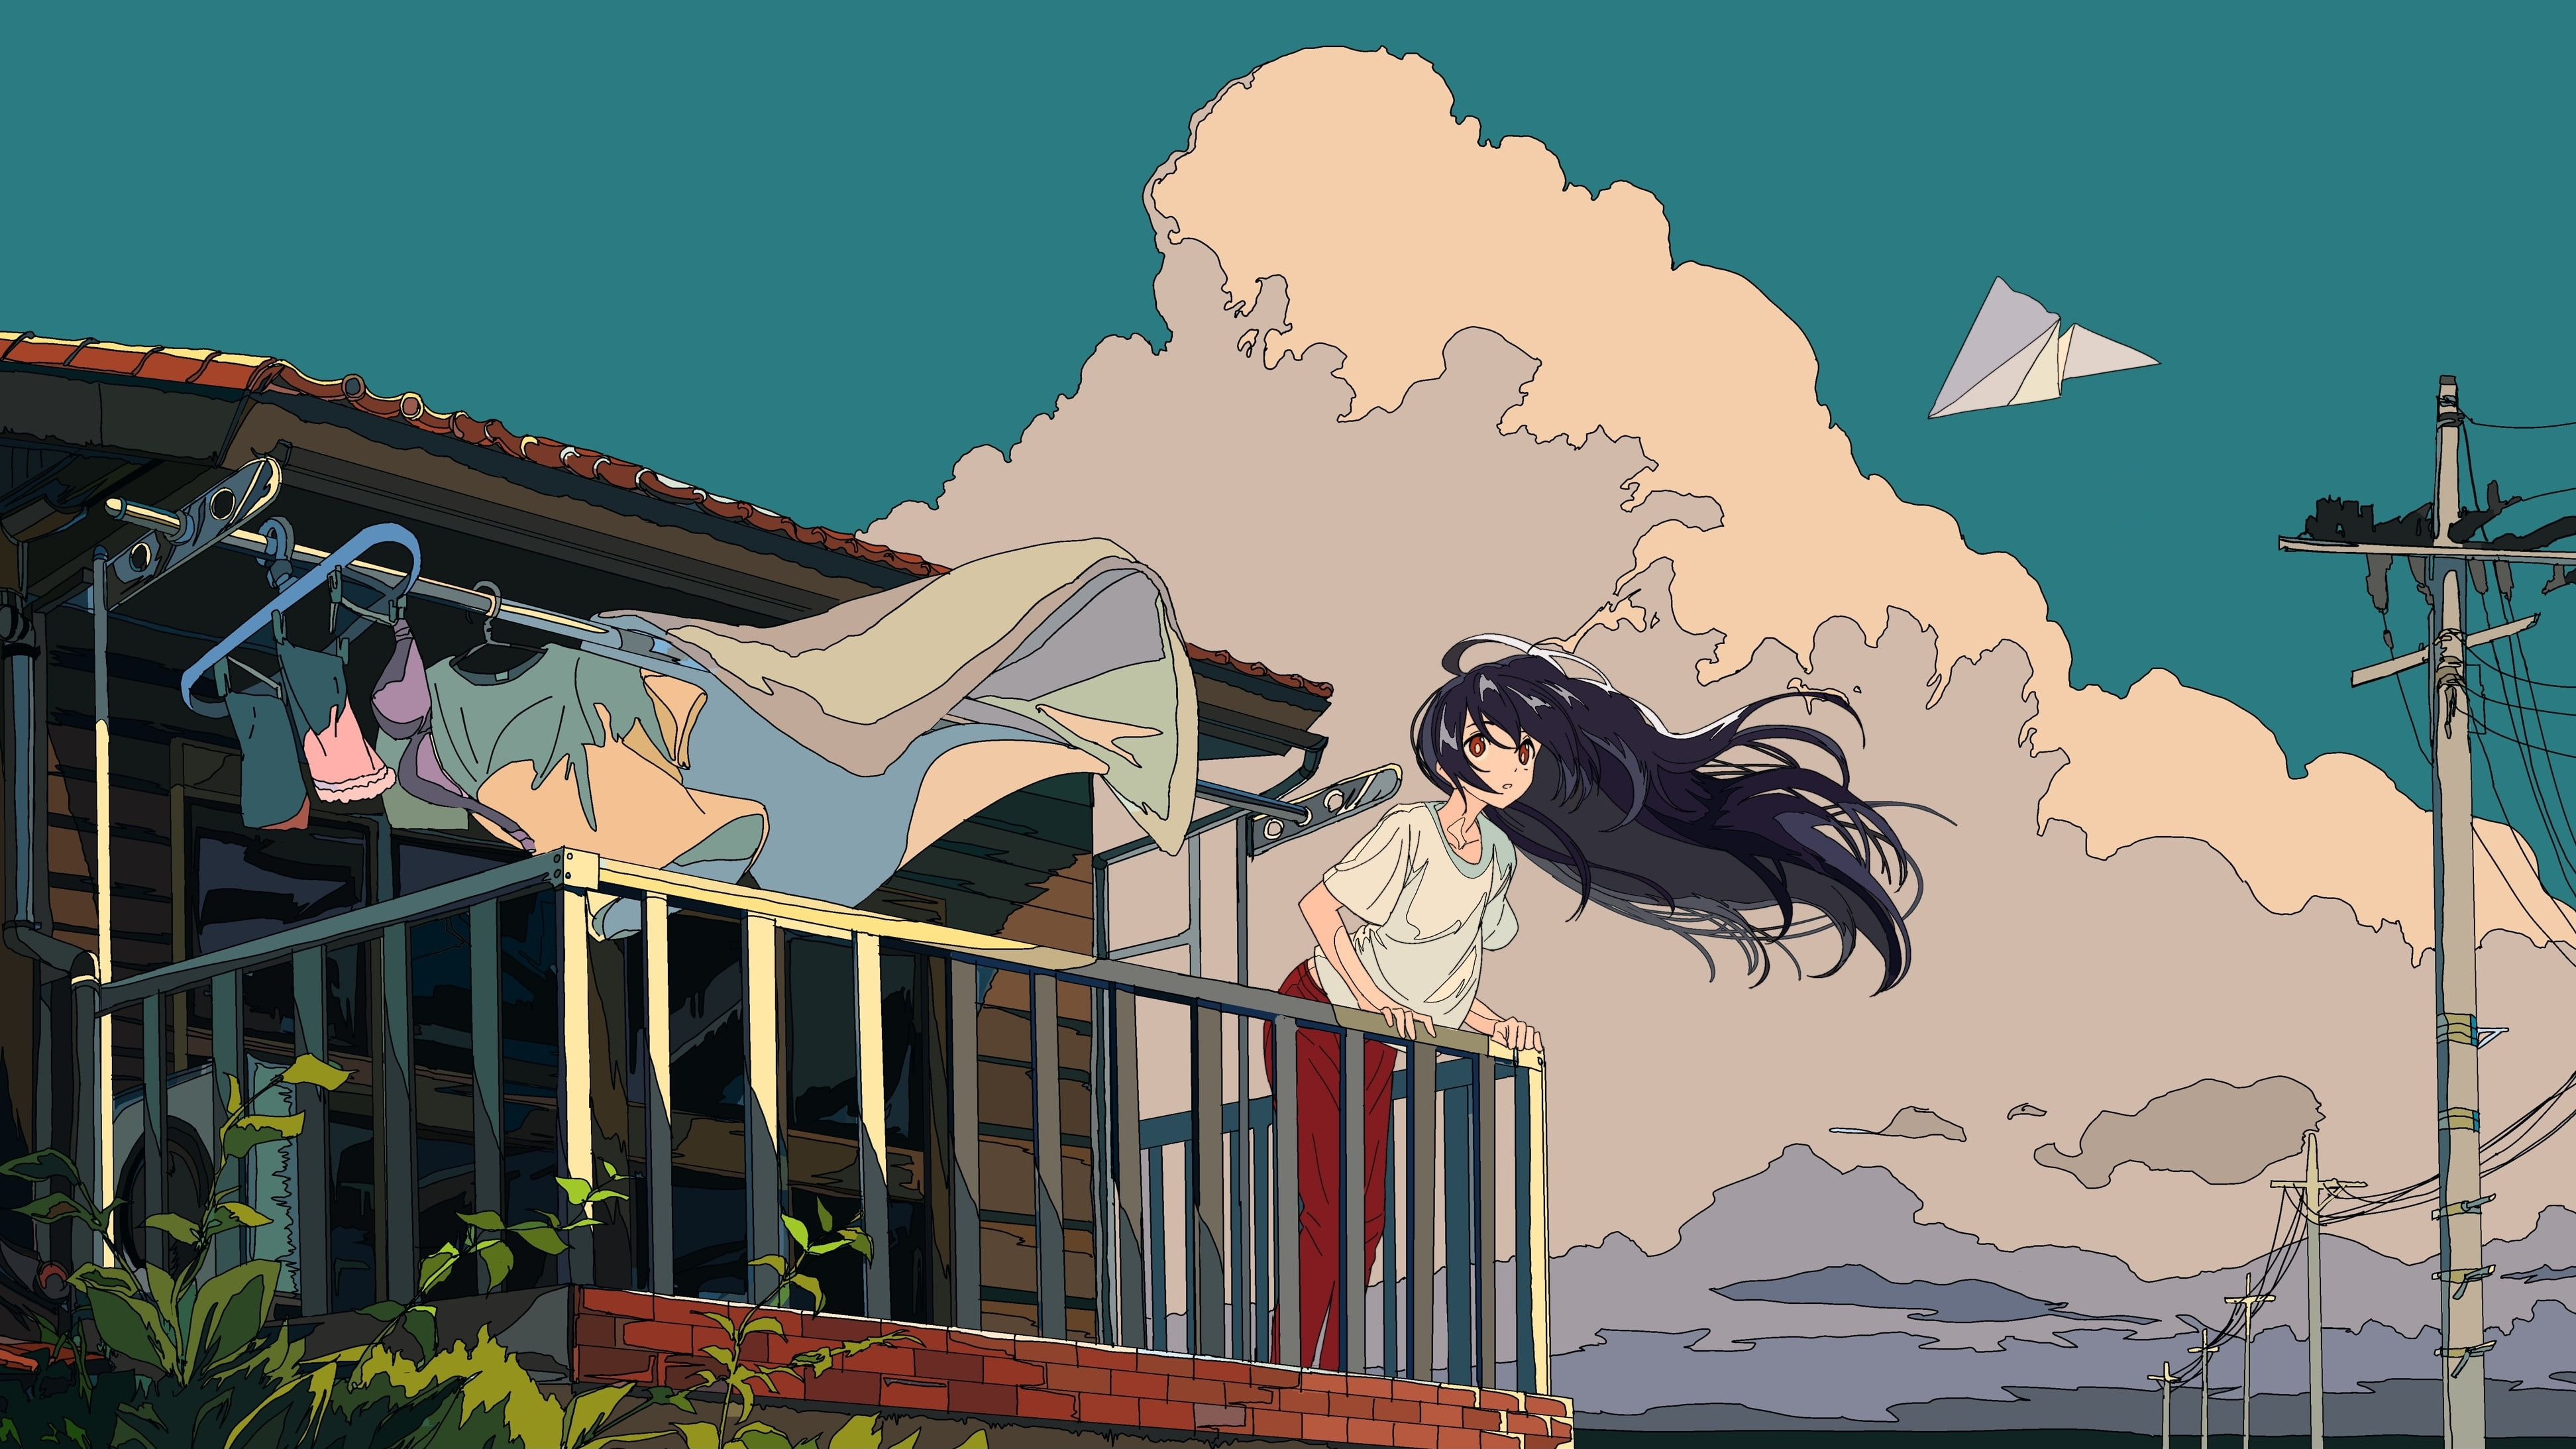 Black Haired Girl Anime Character Illustration Clouds Sky Cloth Bu Computer Wallpaper Desktop Wallpapers Anime Computer Wallpaper Anime Wallpaper 1920x1080